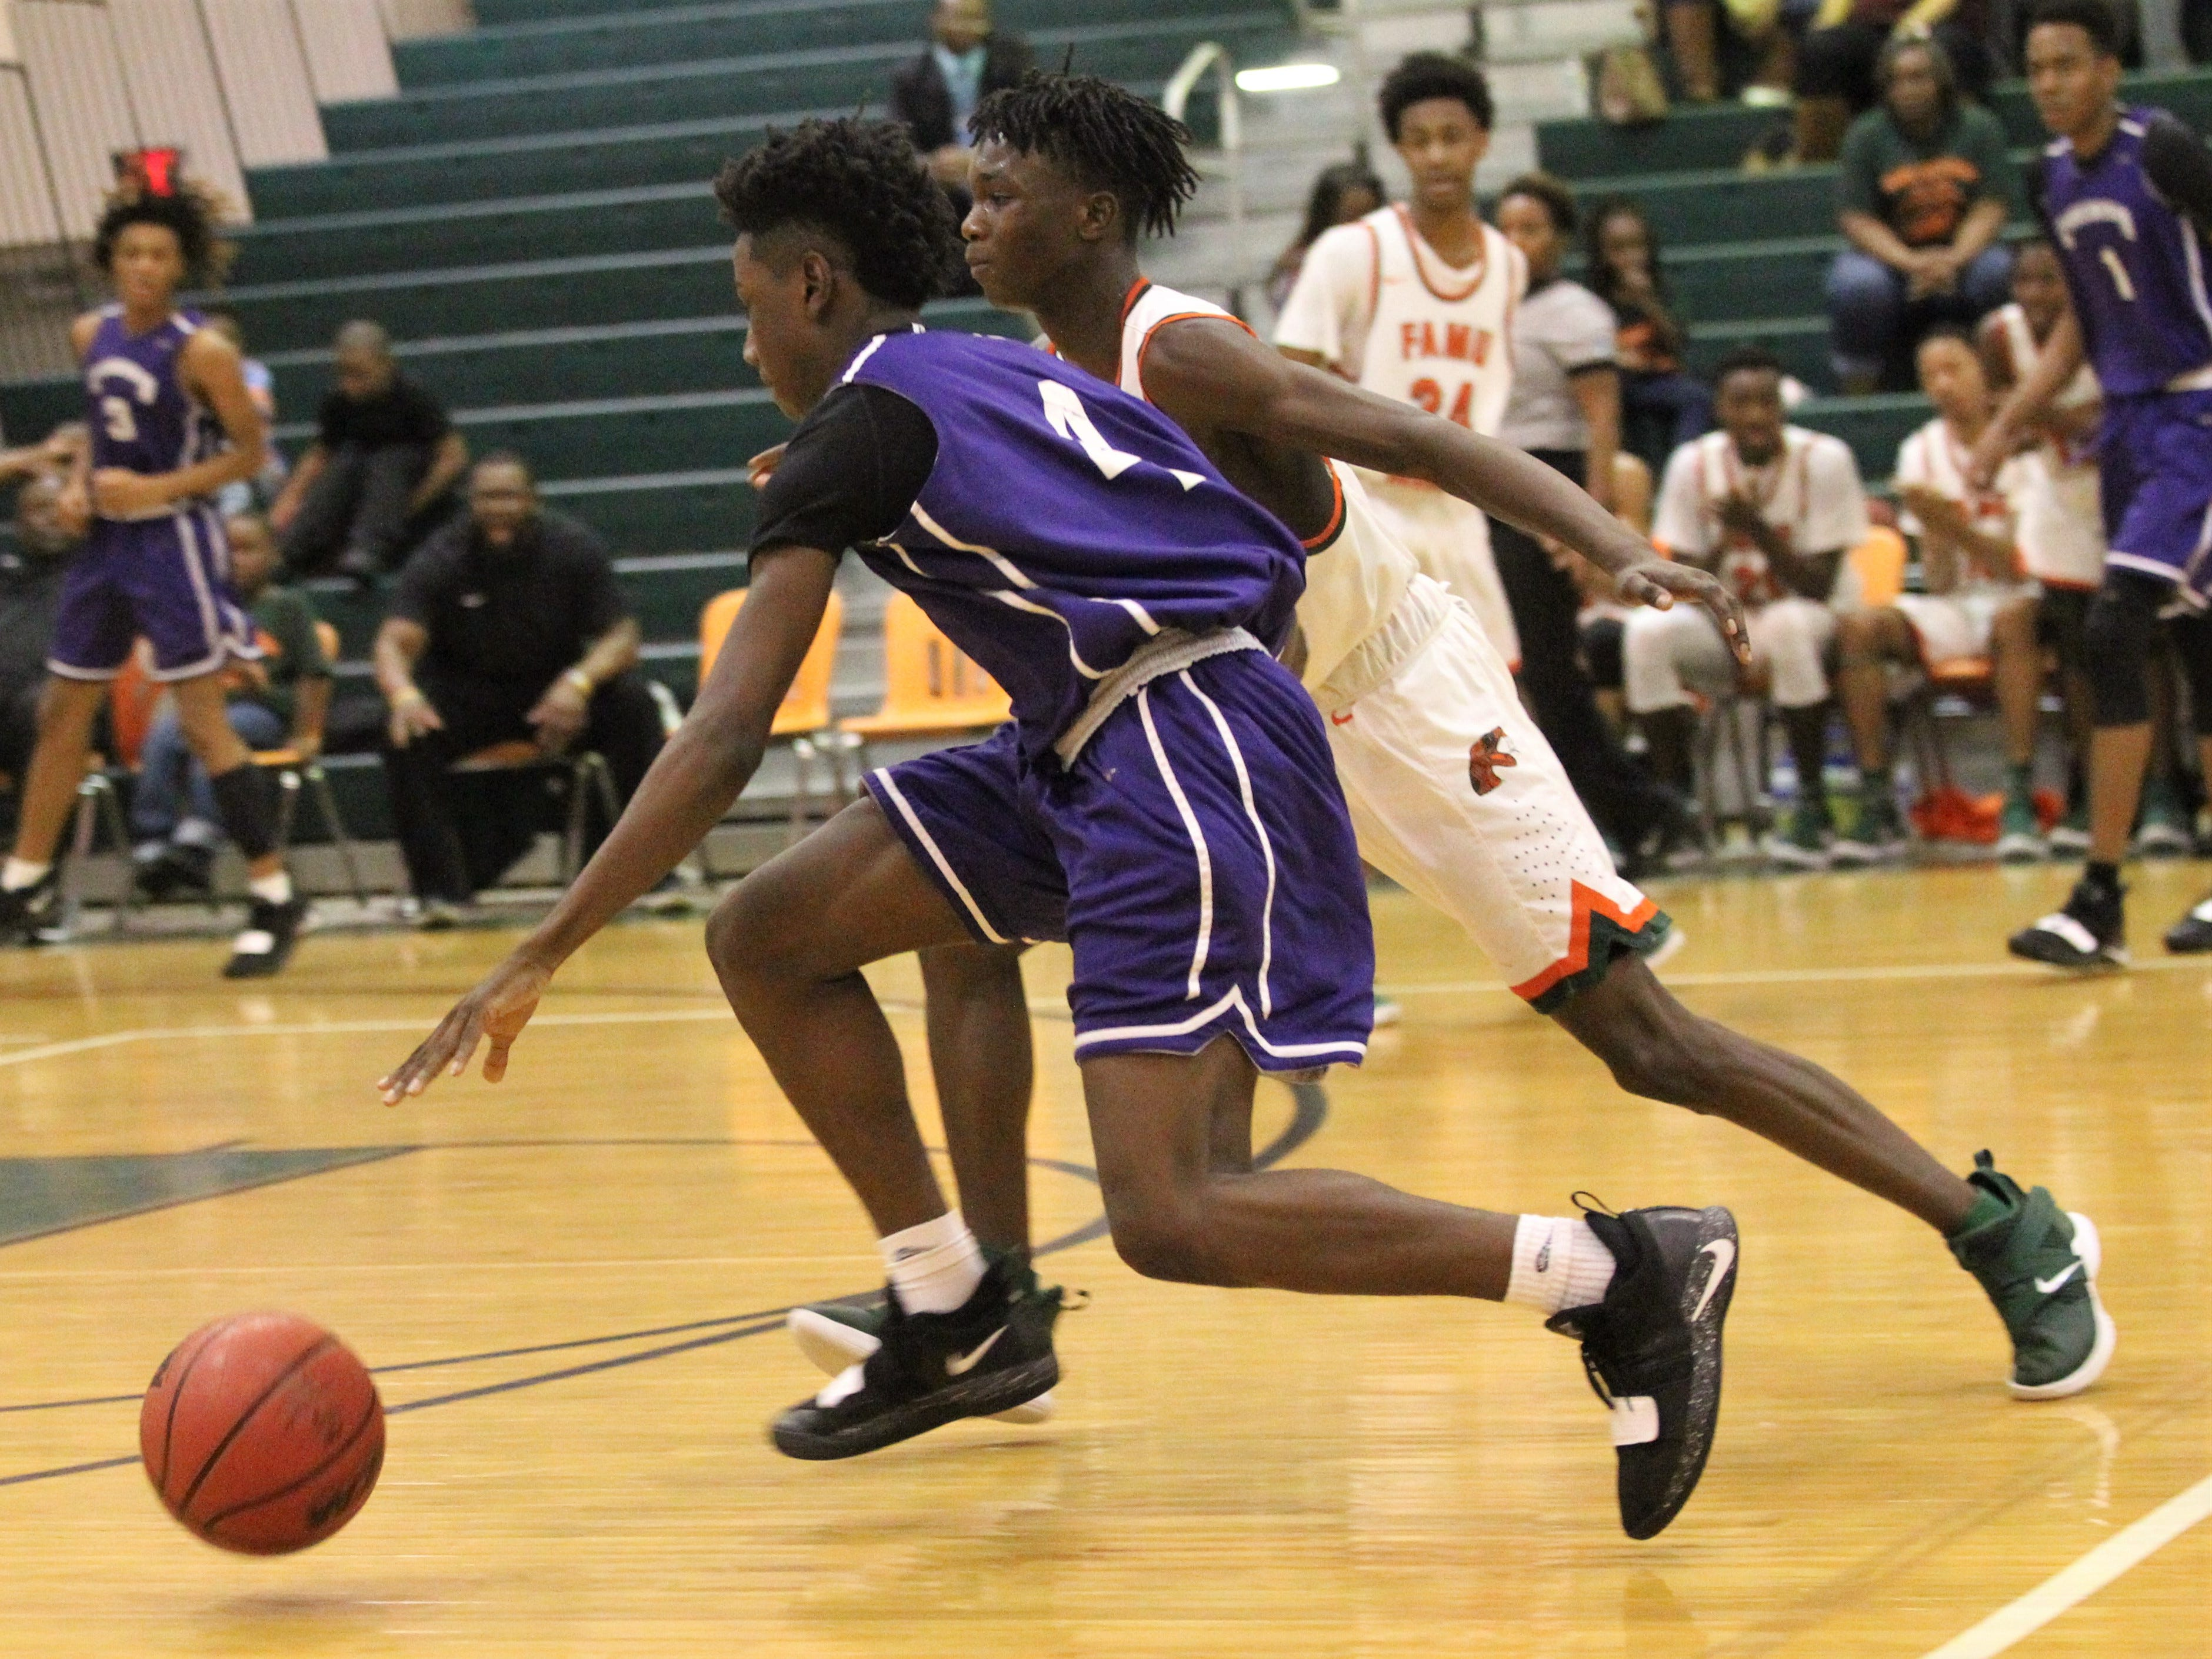 Deonta Jones brings the ball up the court as Crossroad Academy's boys basketball team plays at FAMU DRS on Jan. 7, 2019.